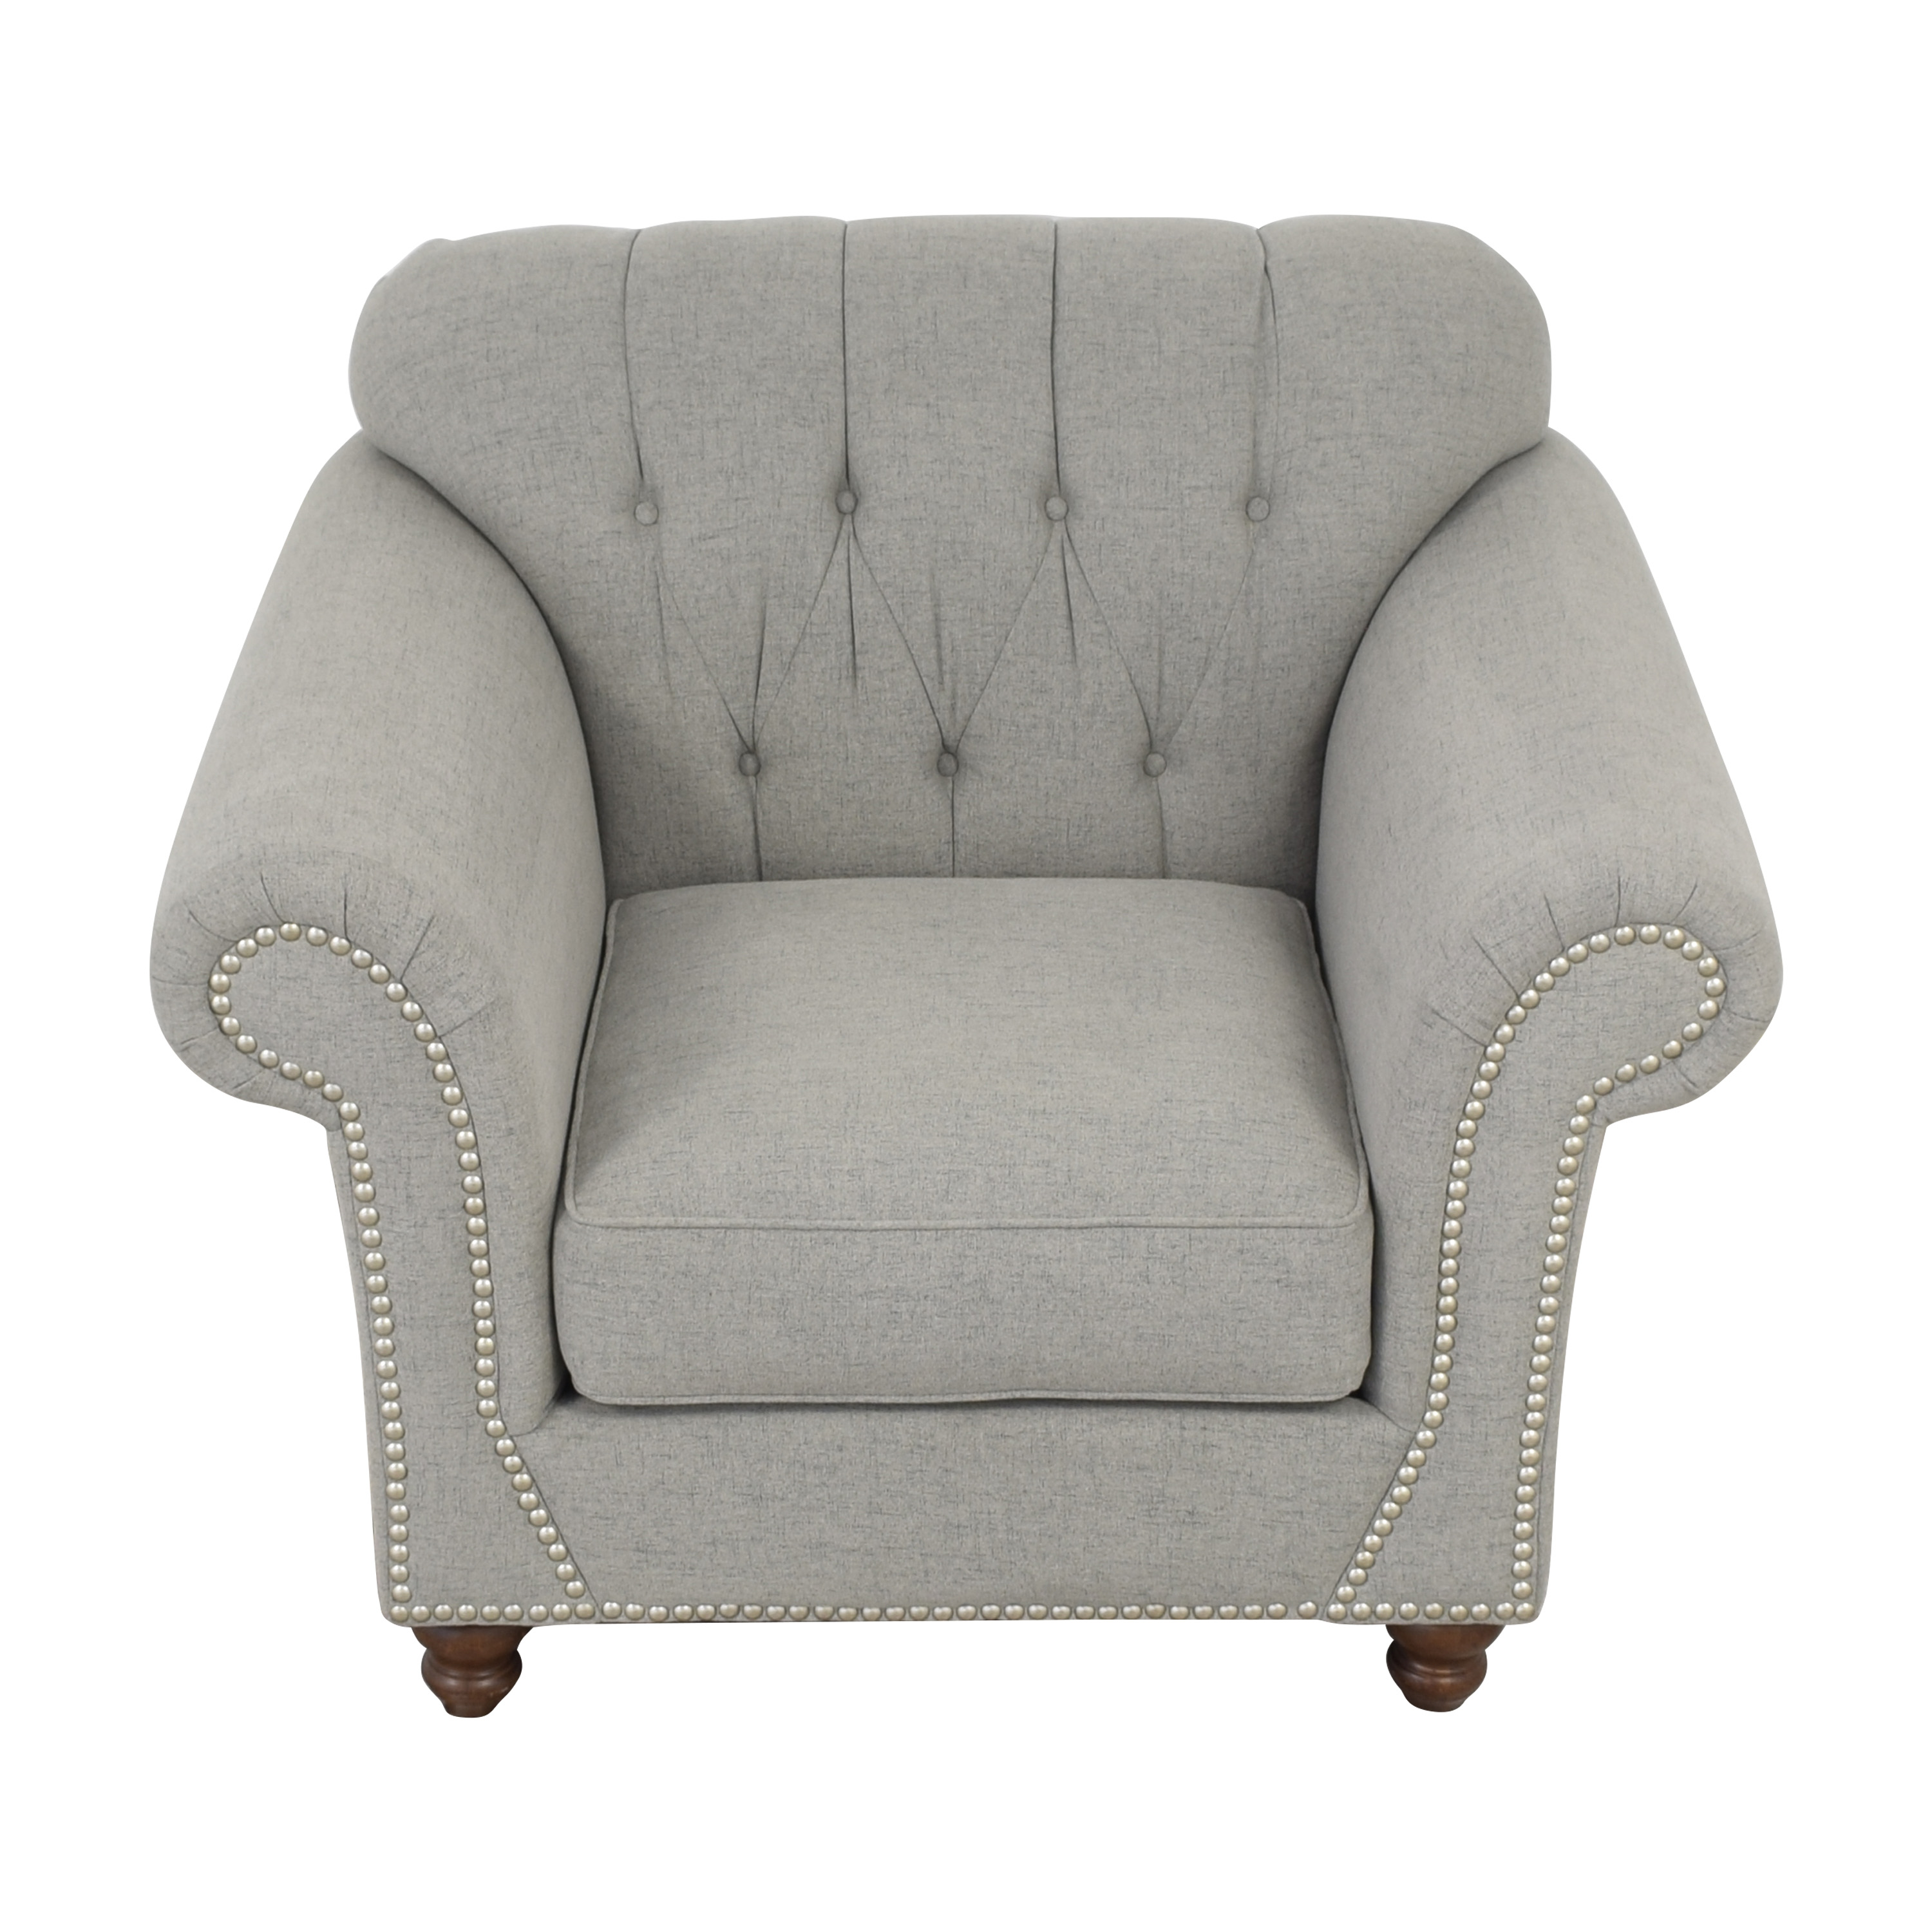 buy Klaussner Klaussner Distinctions Nailhead Accent Chair online